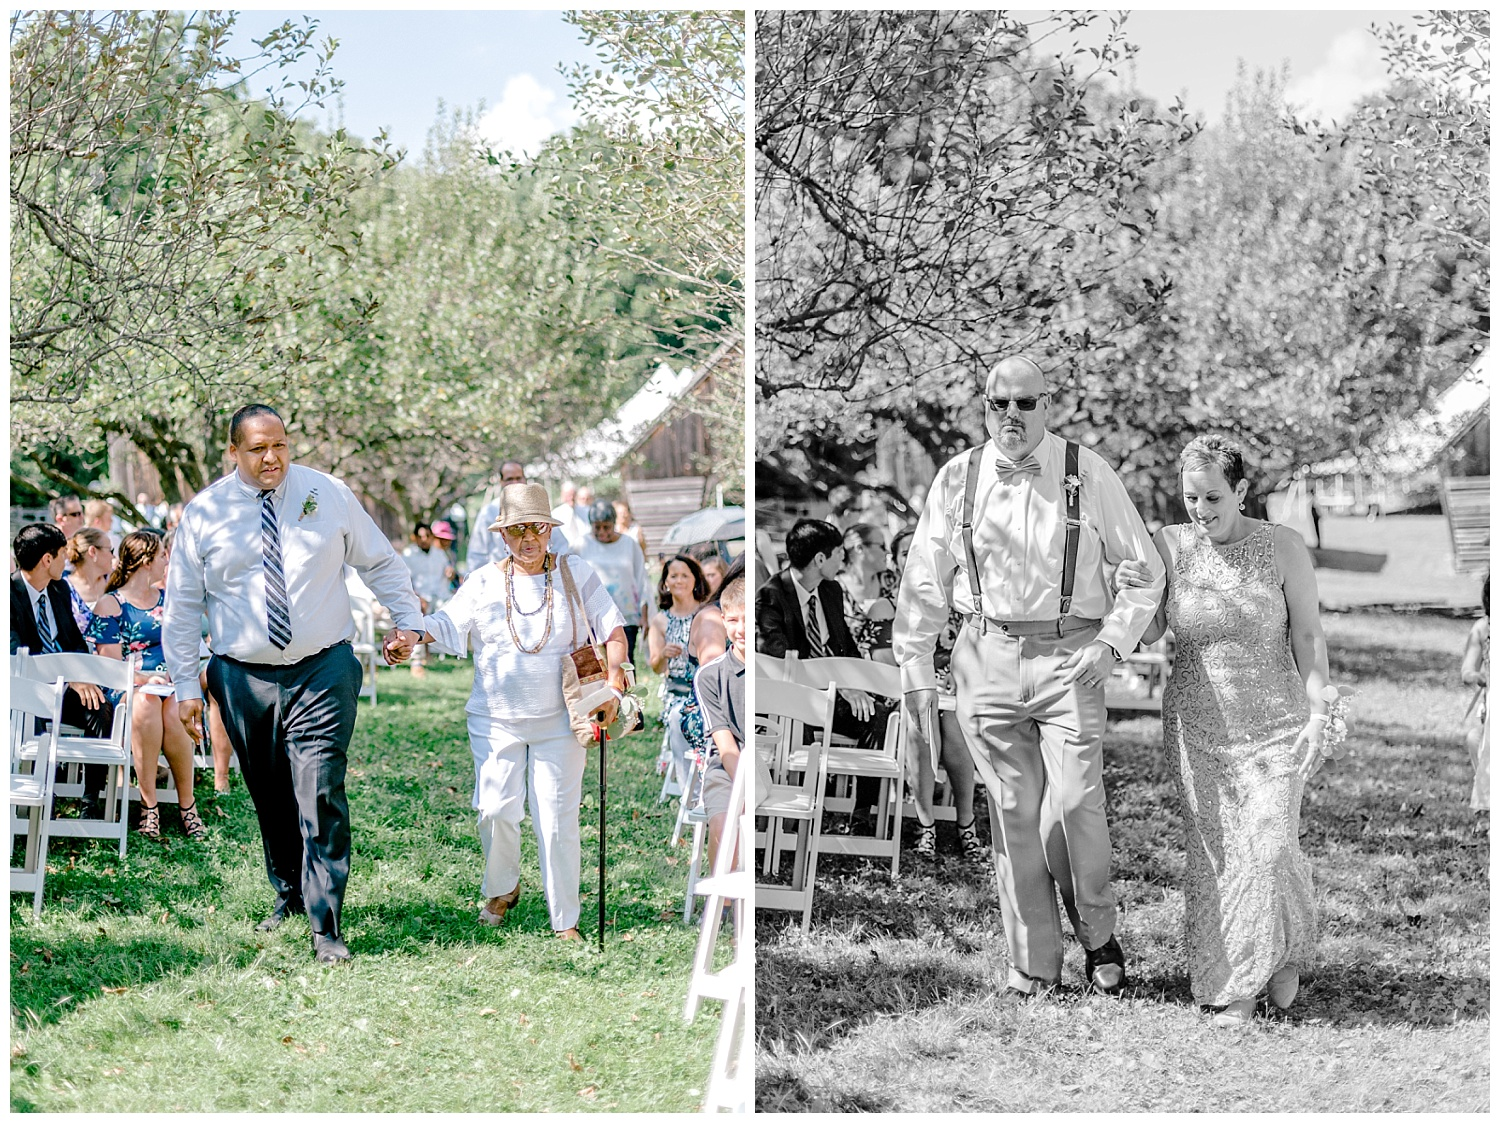 Olive green and white rustic barn wedding at burnside plantation in bethlehem pennsylvania by PA based destination wedding and lifestyle photographer Lytle photography (38).jpg